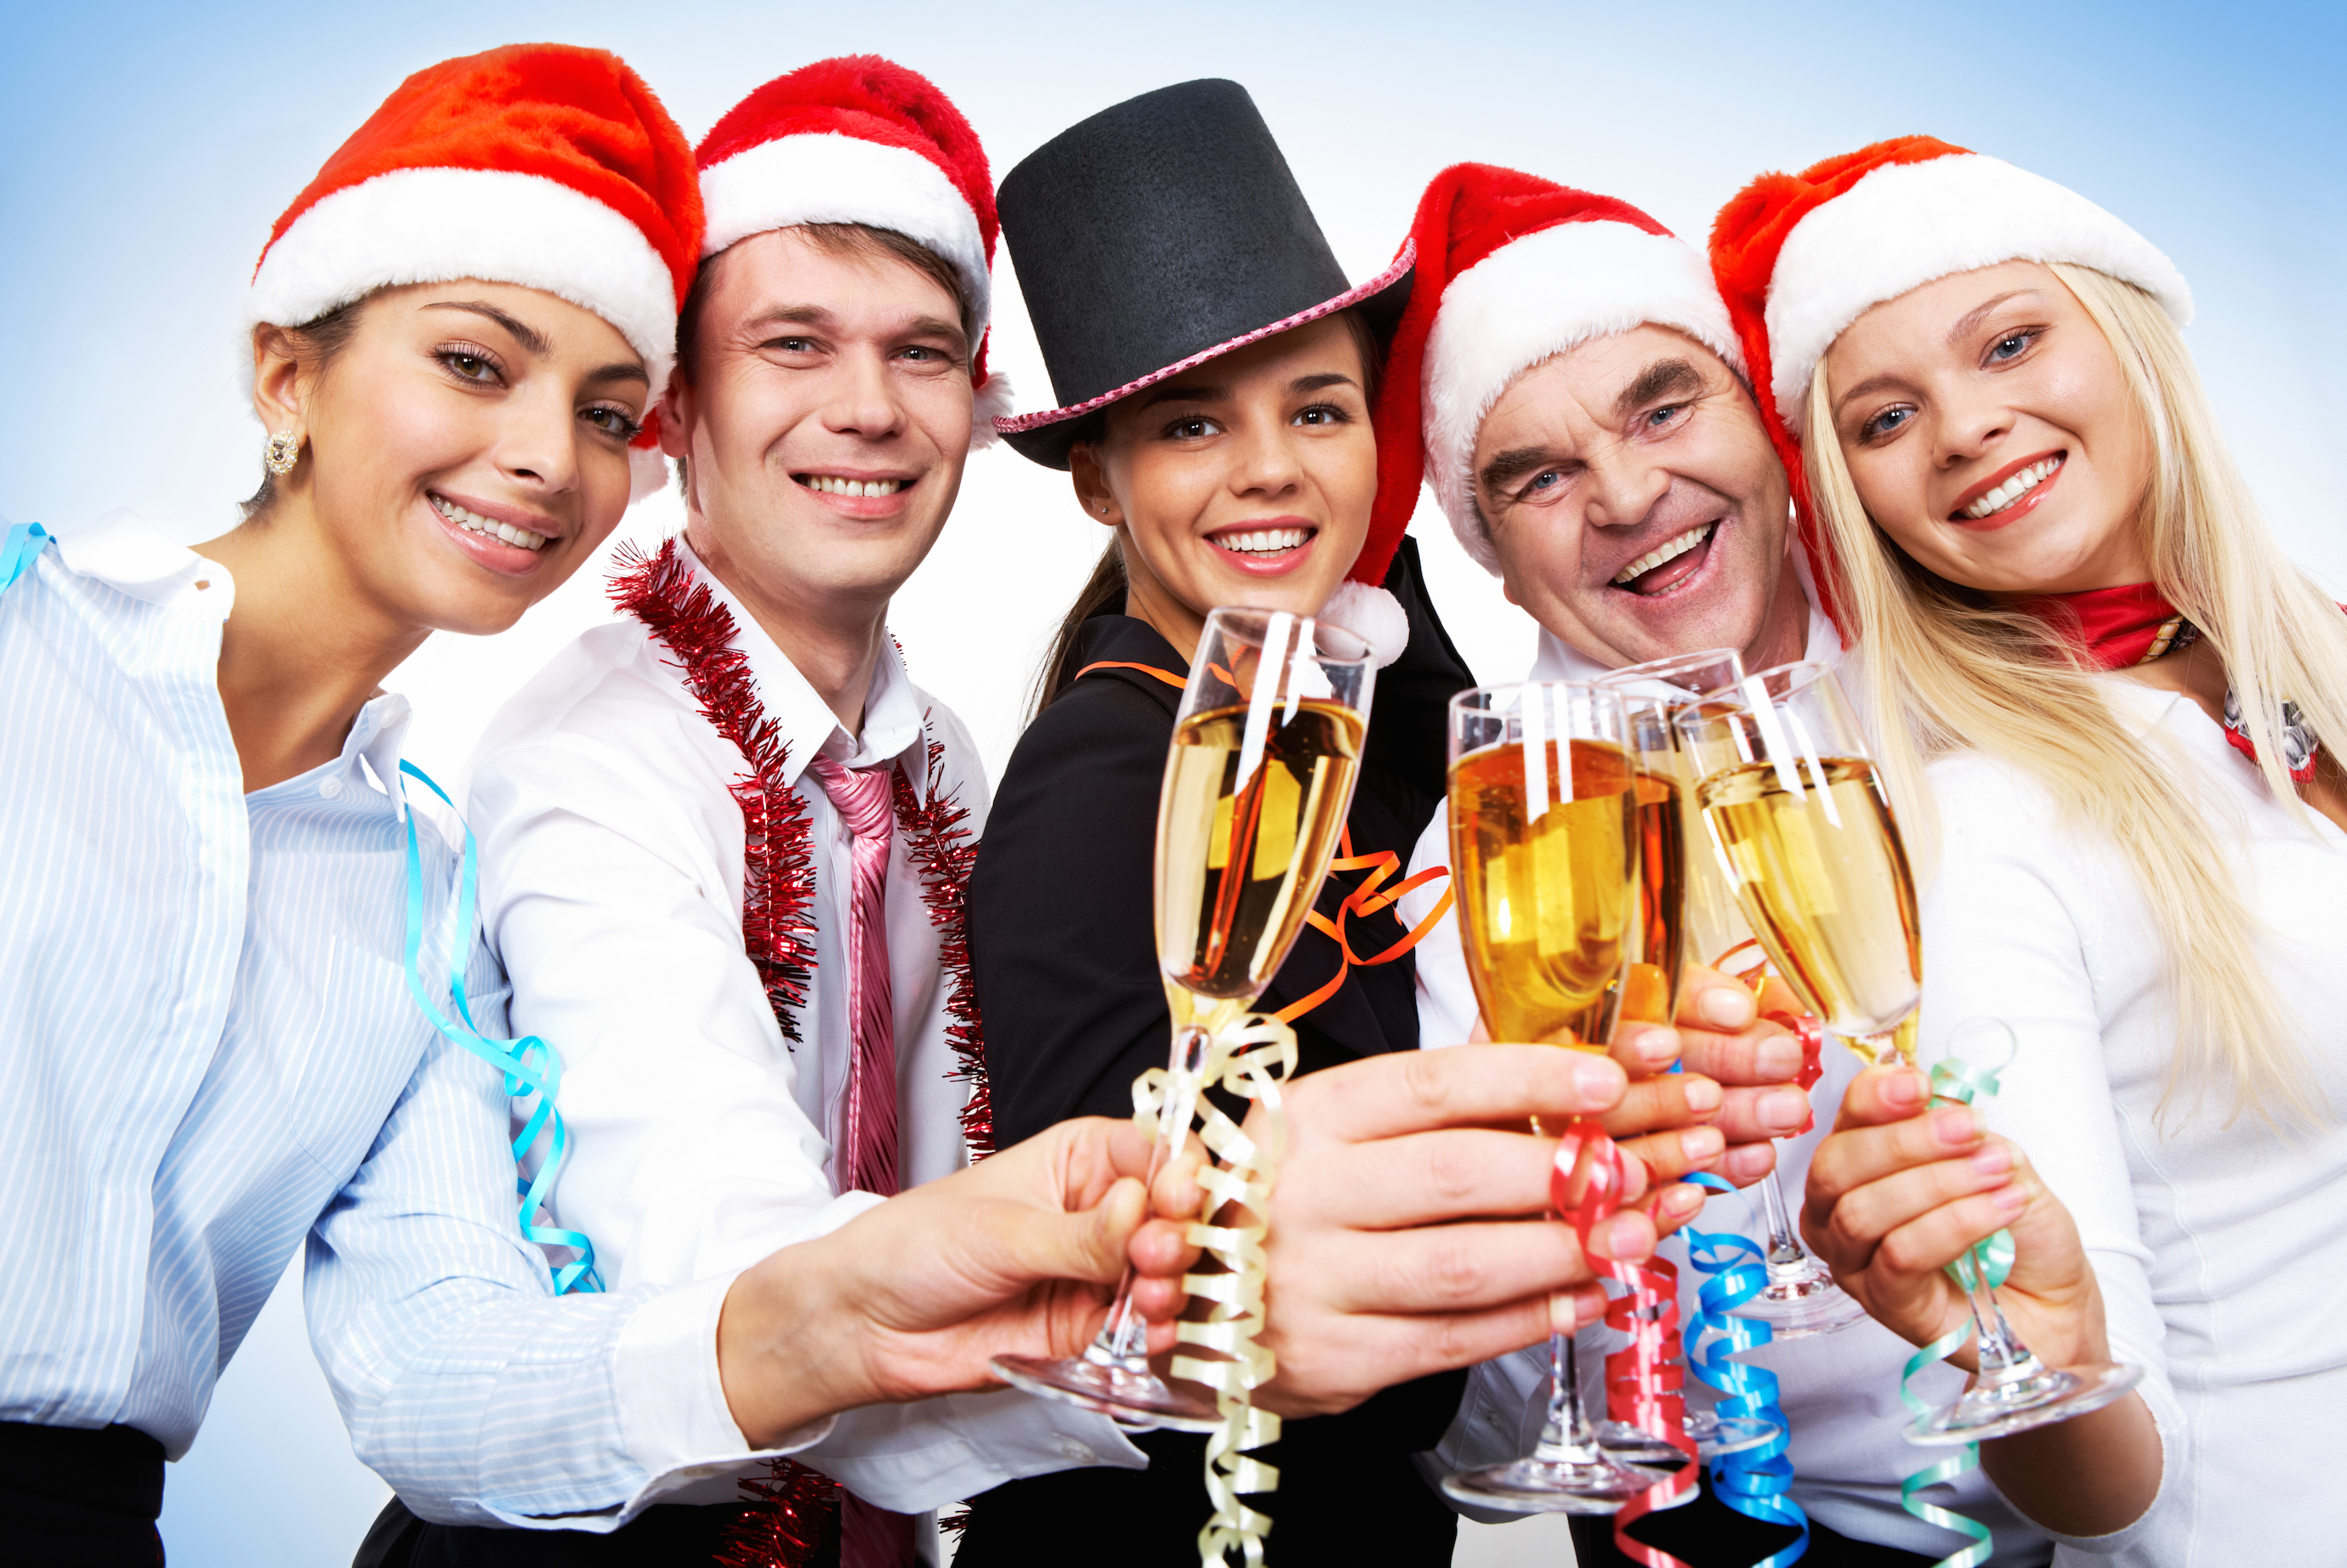 https://d23jhgw4cciqh2.cloudfront.net/blog/featured/2015/07/23/everything-you-wanted-to-know-about-corporate-holiday-parties_2.jpeg